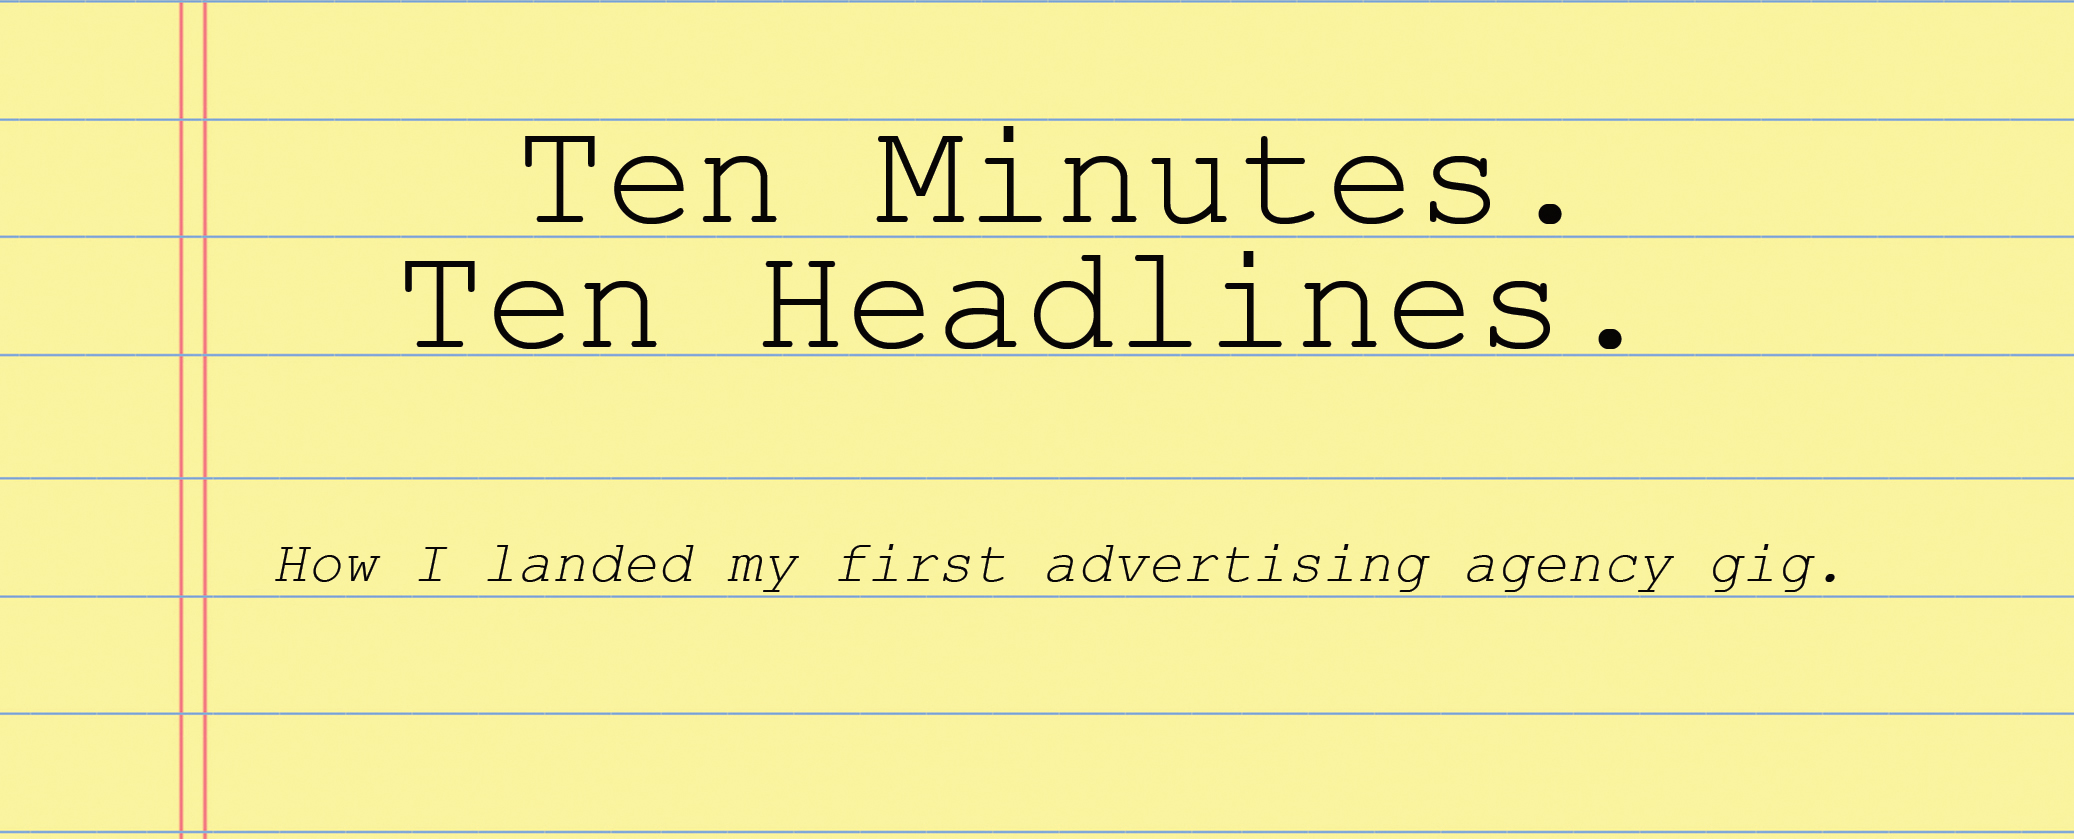 The Ten Headlines in Ten Minutes Challenge